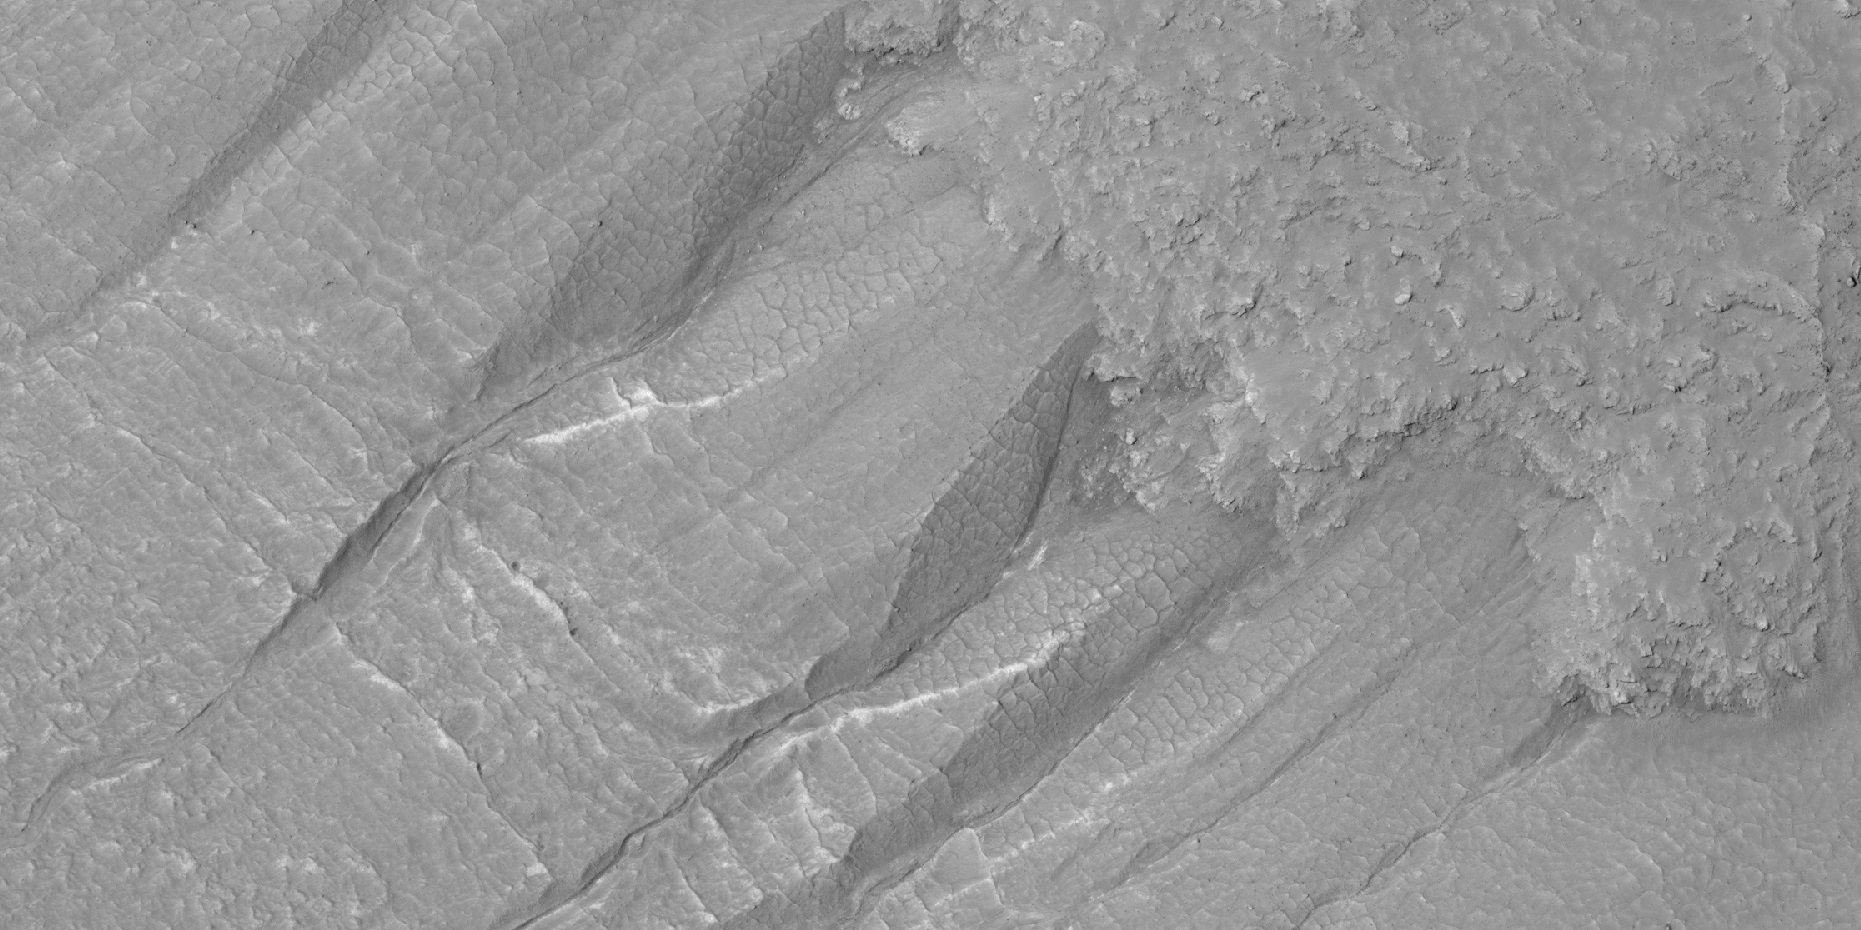 Close view of gullies in crater Polygons are visible in this close view.